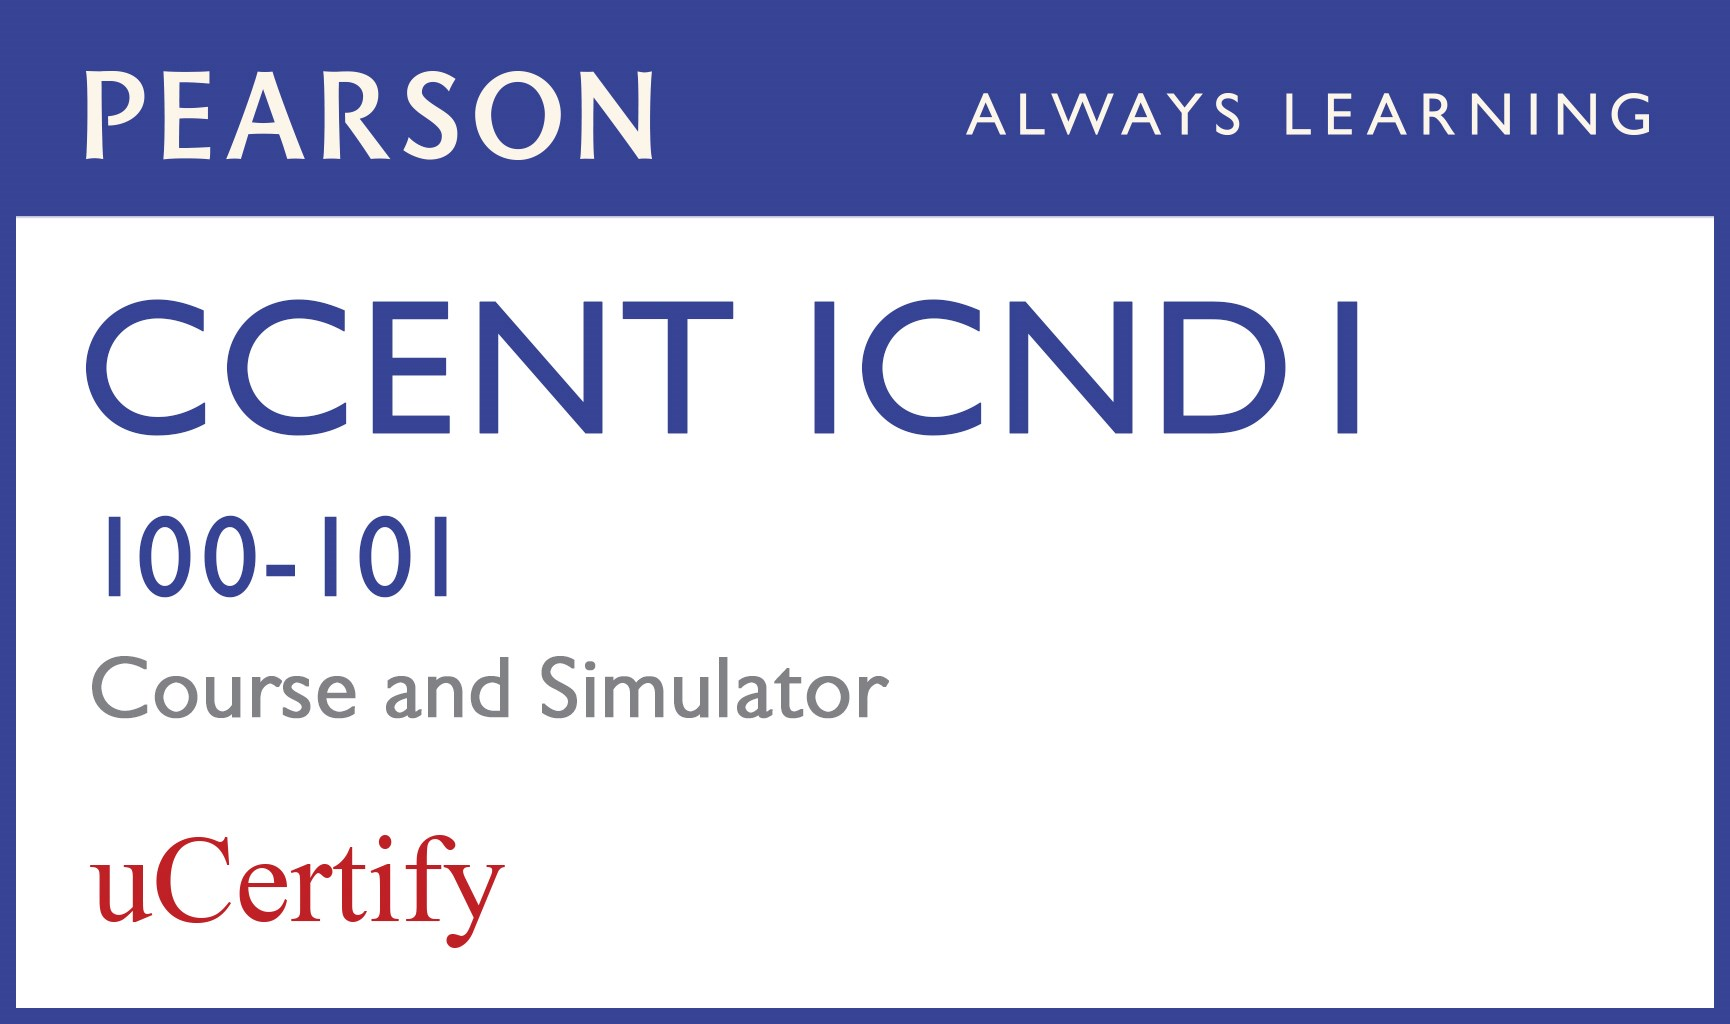 CCENT ICND1 100-101 Pearson uCertify Course and Network Simulator Bundle